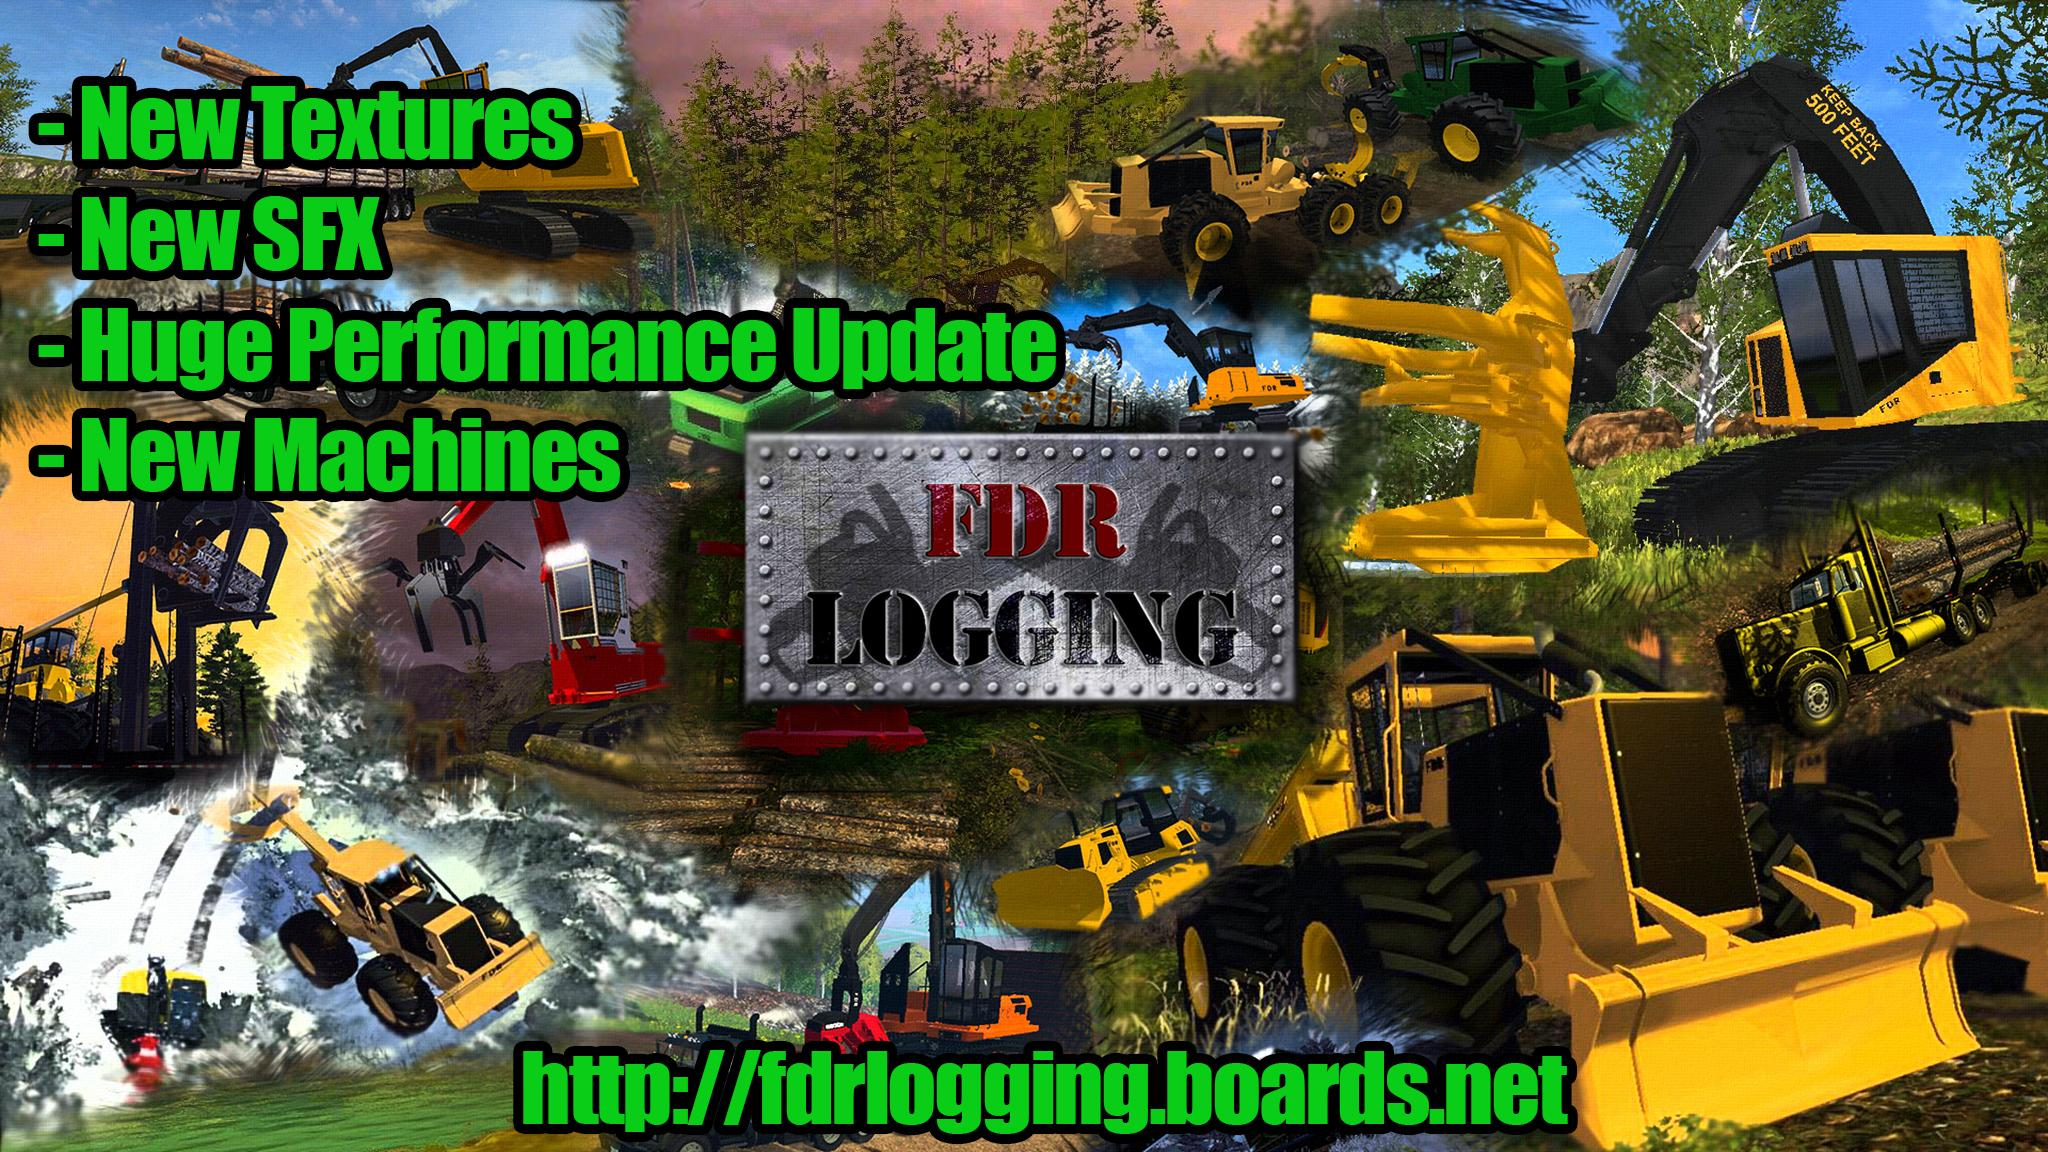 FDR LOGGING - FORESTRY EQUIPMENT V5 FS17 - Farming Simulator 17 mod